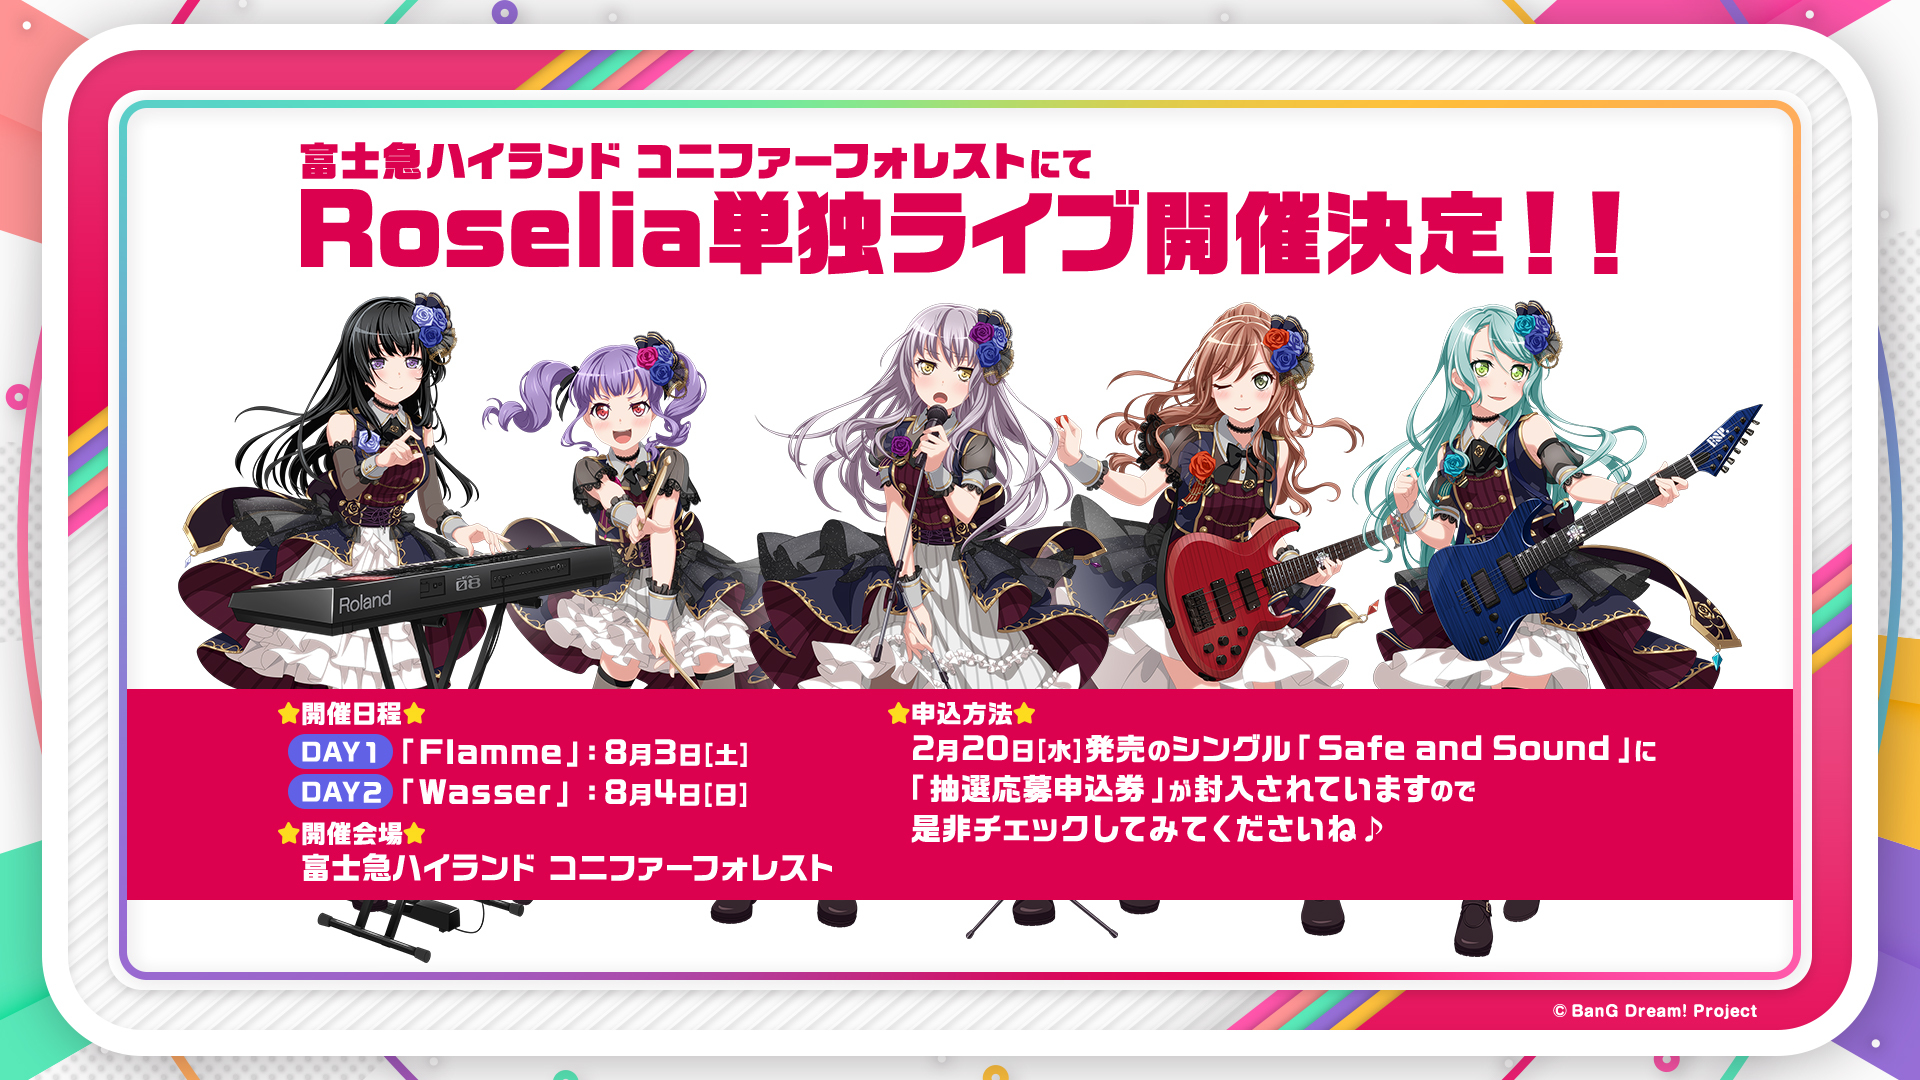 Roselia単独ライブ開催決定 (C)BanG Dream! Project (C)Craft Egg Inc. (C)bushiroad All Rights Reserved.